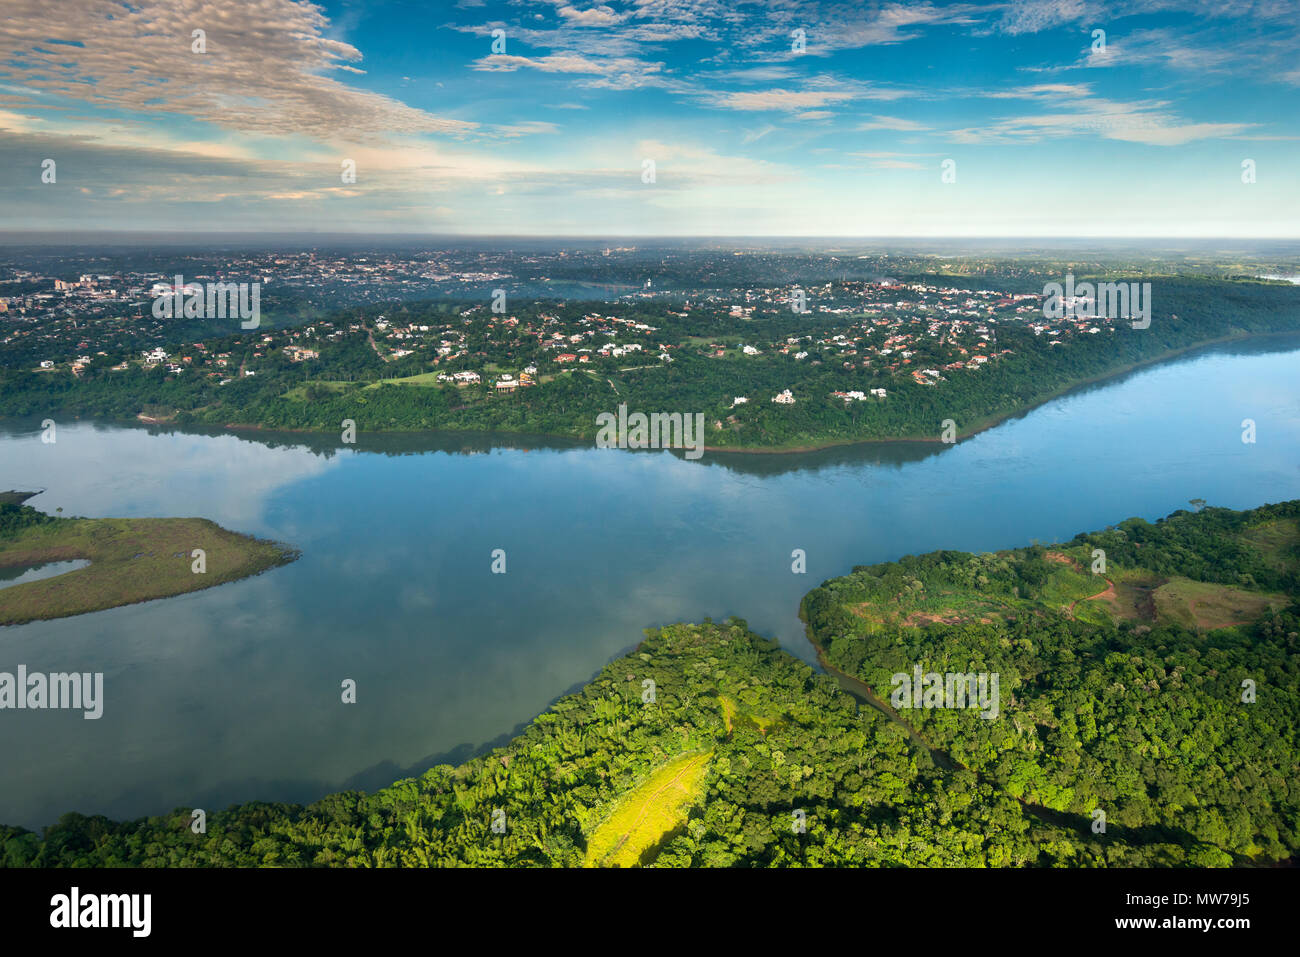 Aerial view of Parana River on the border of Paraguay and Brazil - Stock Image